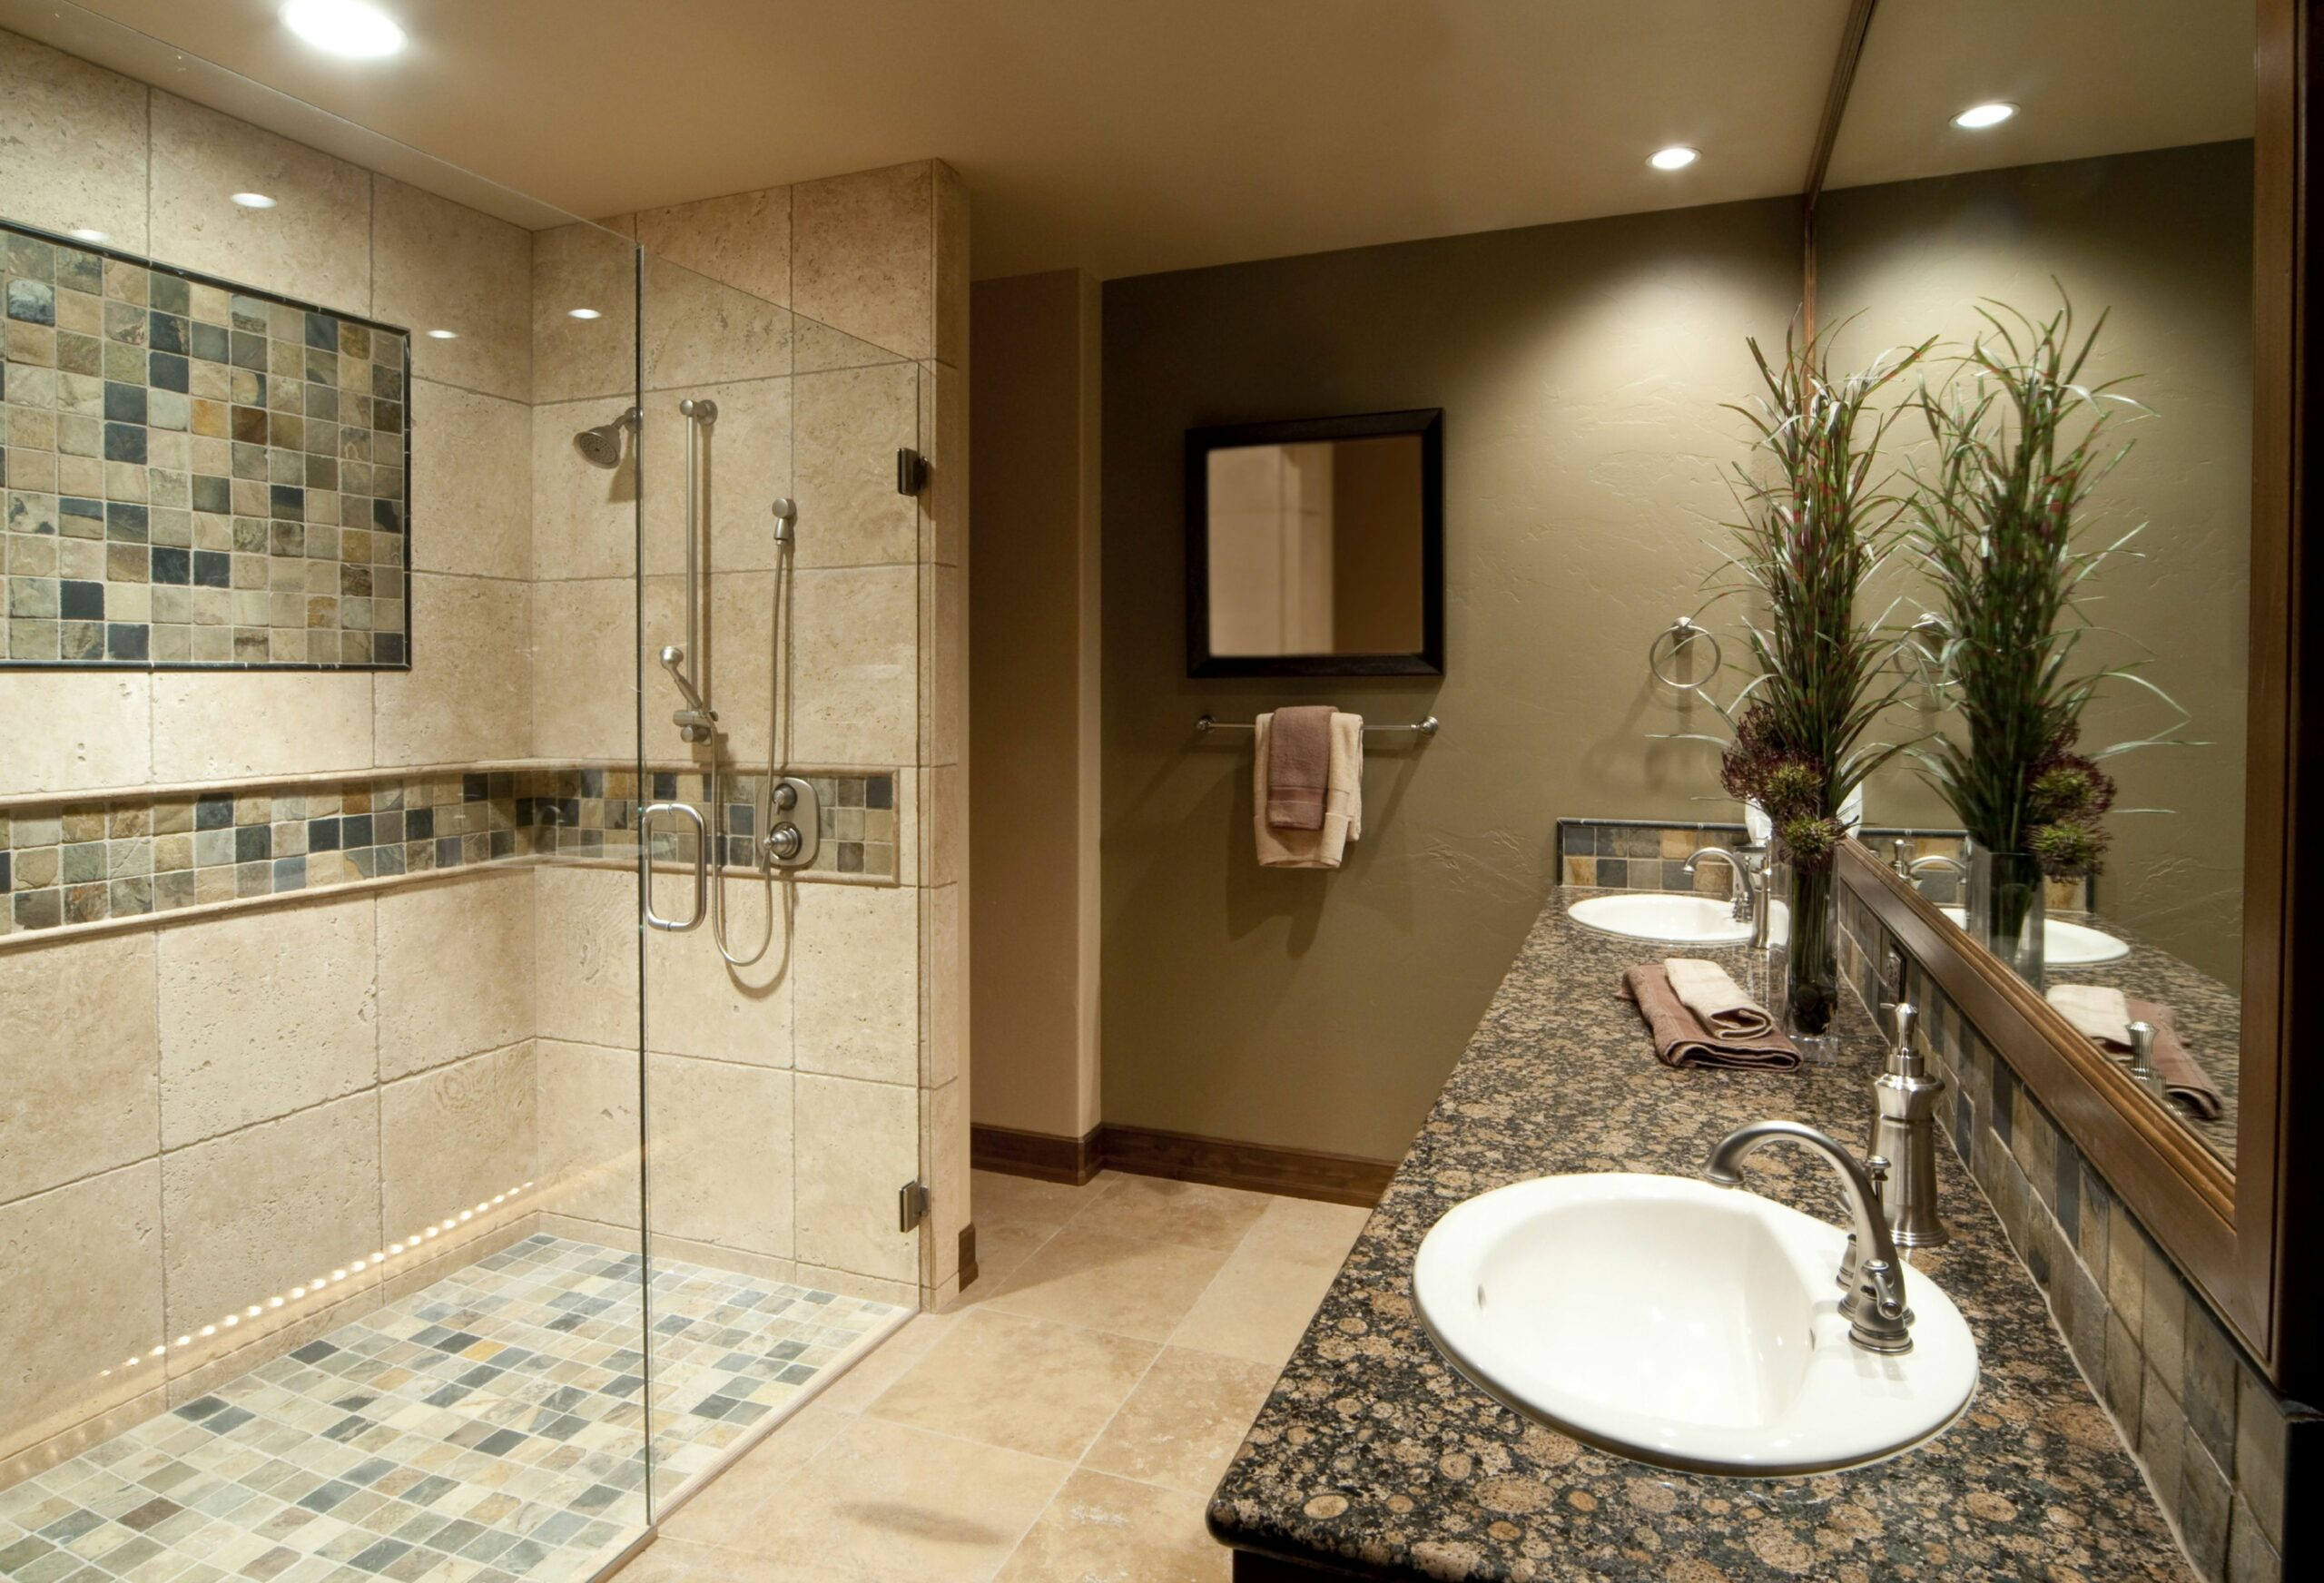 Tile Shower Designs for Favorite Bathroom - Traba Homes - bathroom ideas large shower